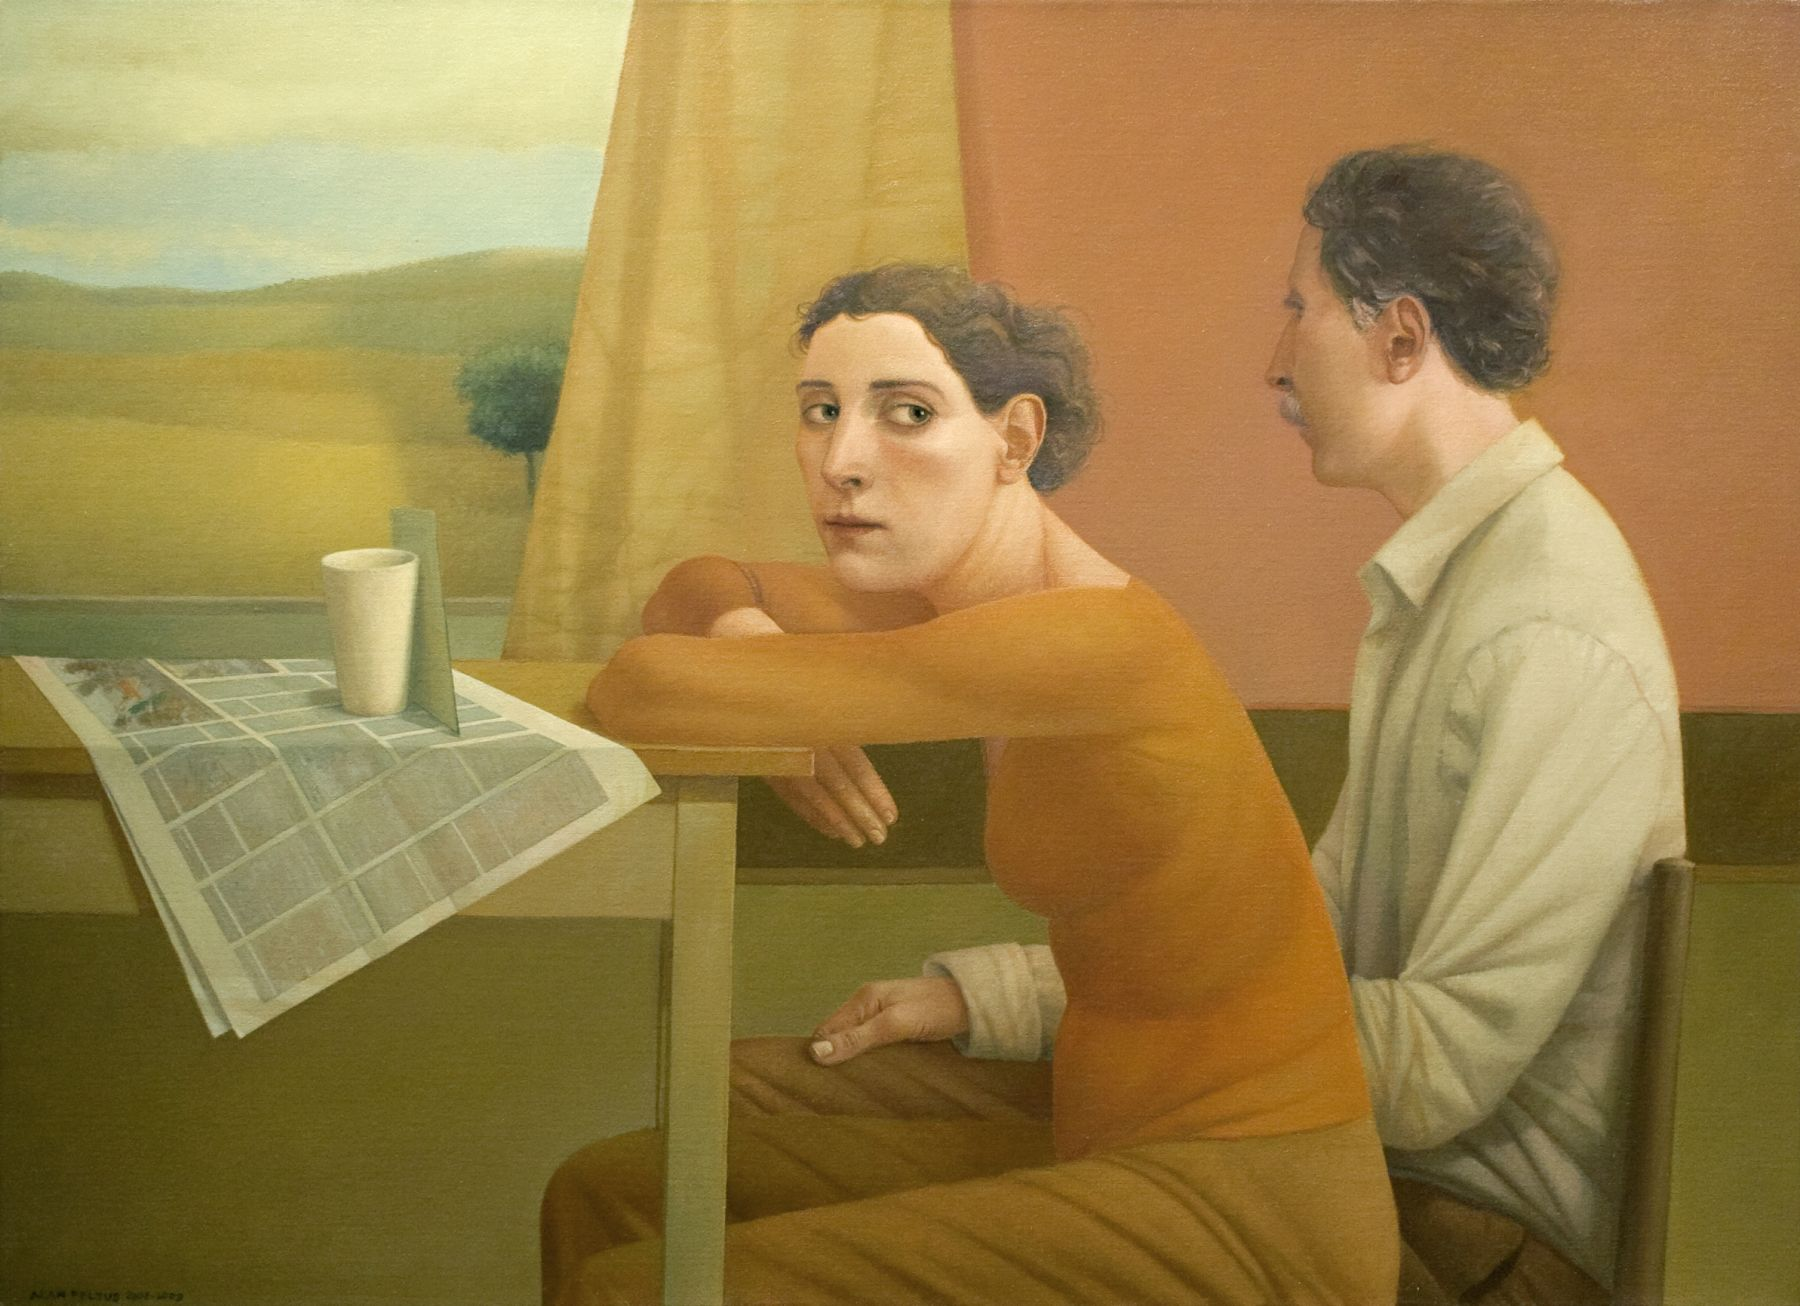 alan feltus, No Words Could Explain, 2008-09, oil on canvas, 31 1/2 x 31 1/4 inches